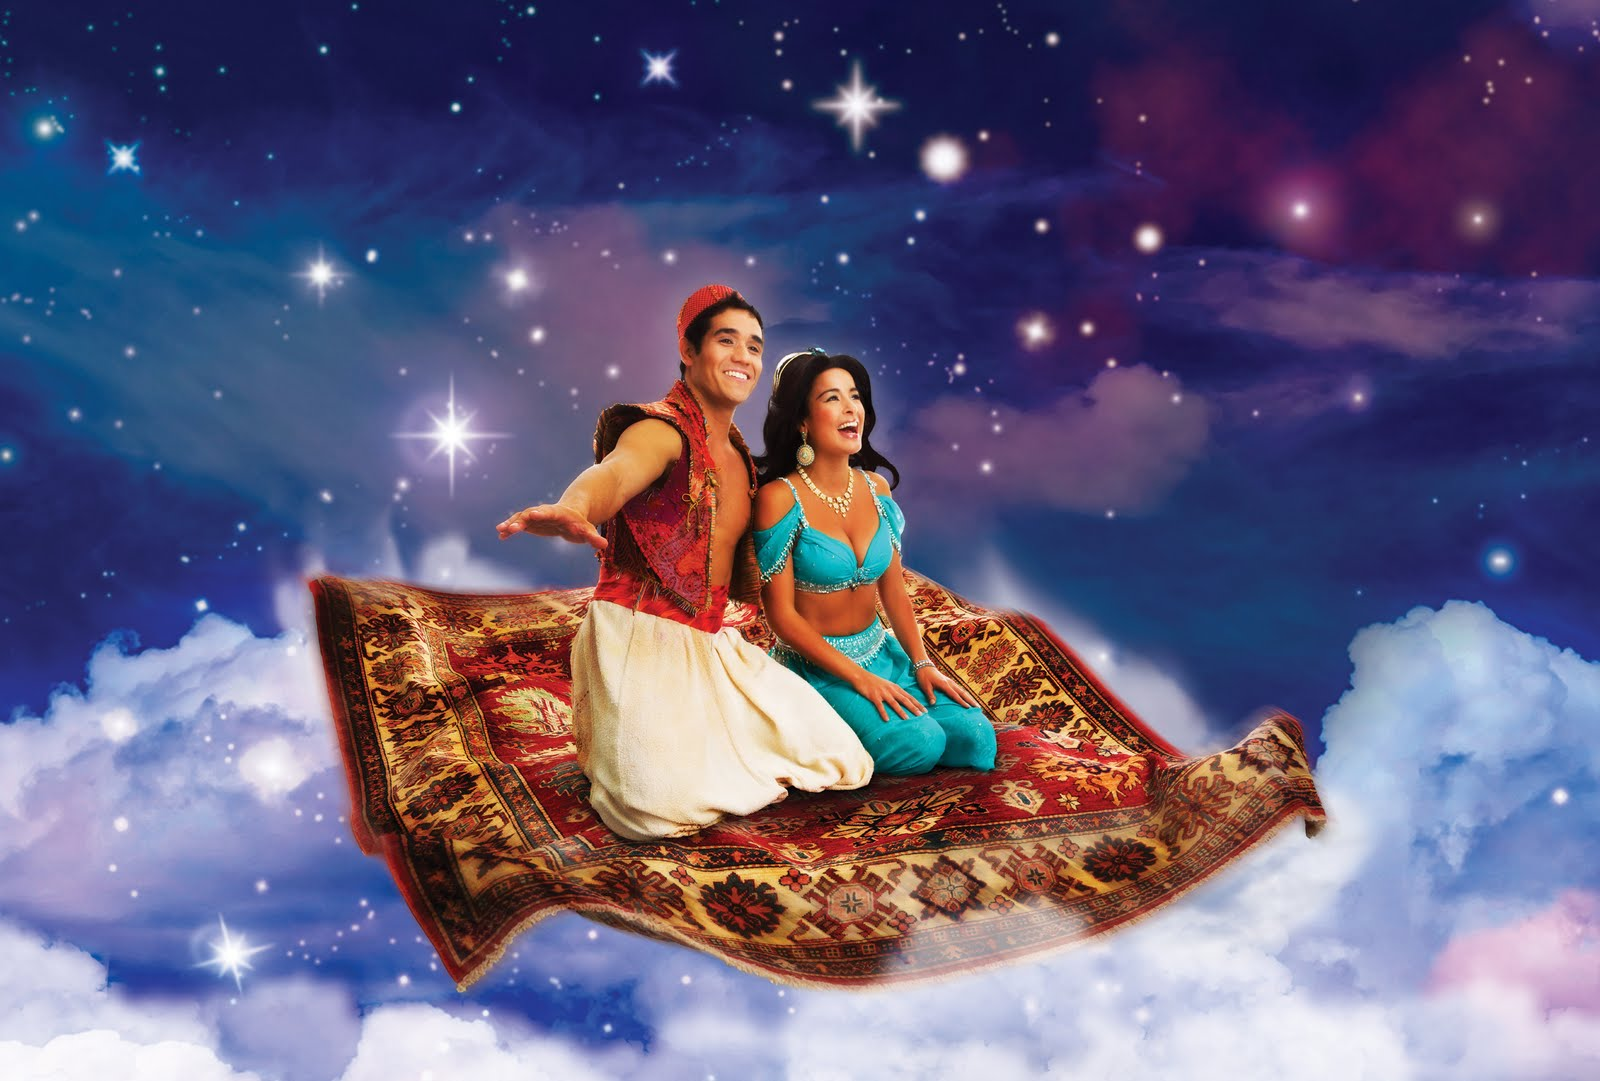 Gif Fliegender Teppich Aladdin Musical July 2011